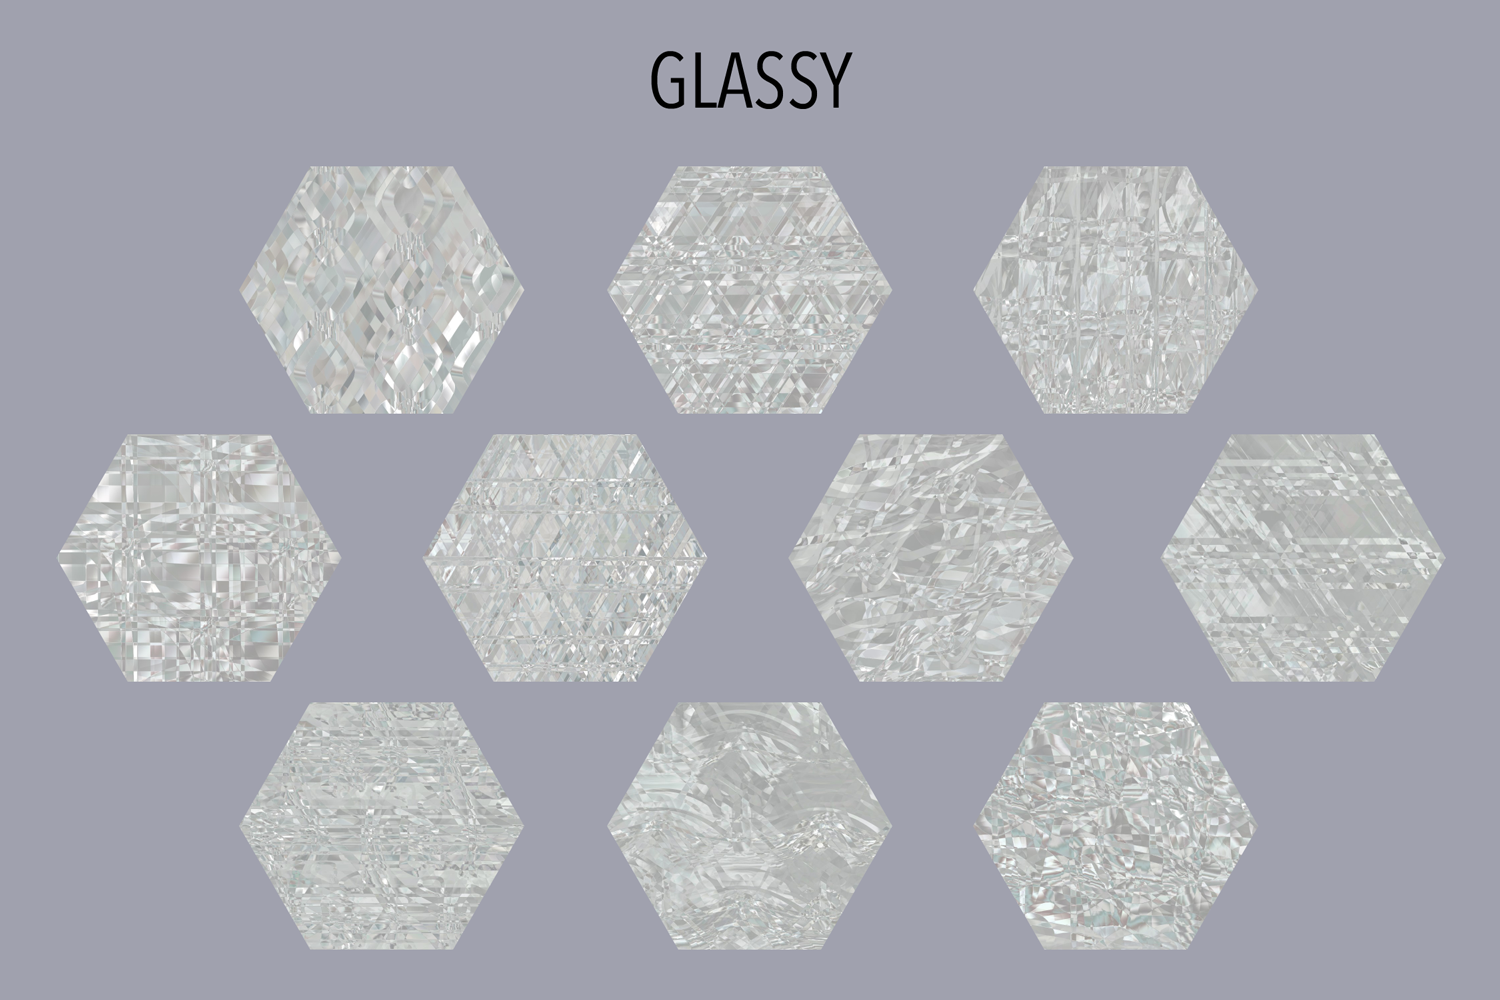 Glassy Textures example image 8